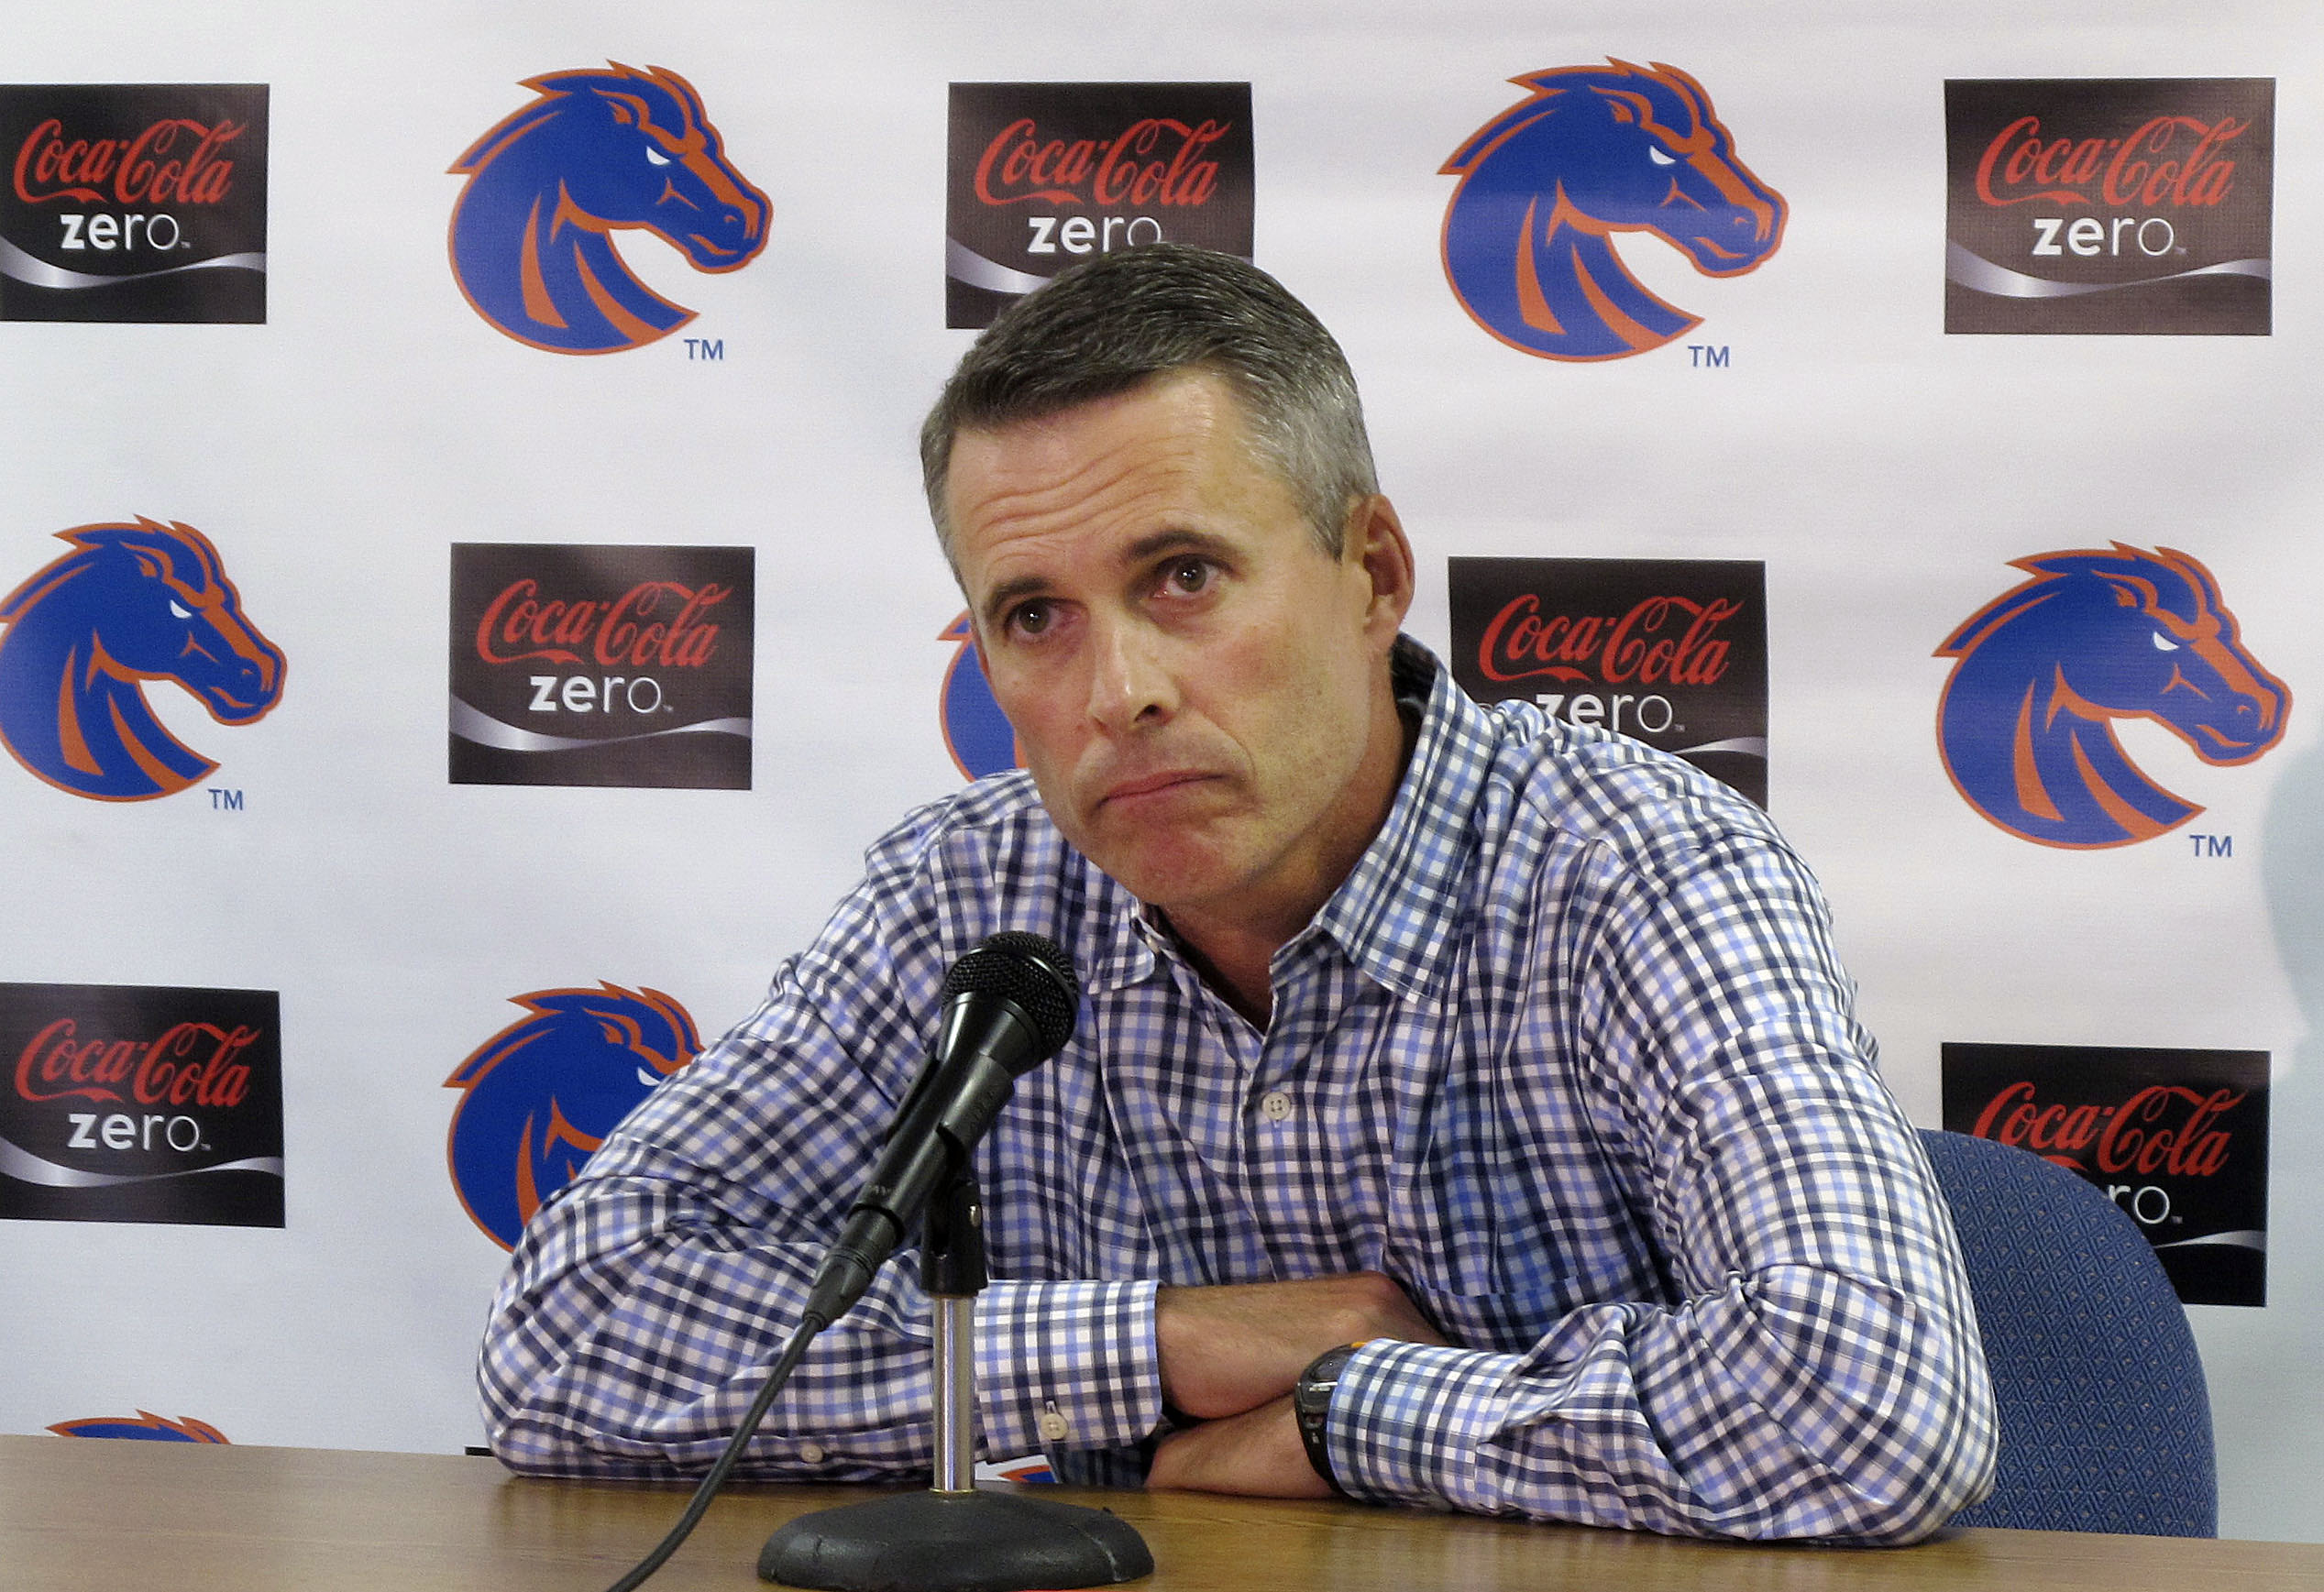 ADVANCE FOR WEEKEND EDITIONS, AUG. 29-30 - FILE - In this Sept. 9, 2013, file photo, then-Boise State head coach Chris Petersen speaks at a news conference in Boise, Idaho. What Petersen accomplished in his 13 years at Boise State was raising the profile